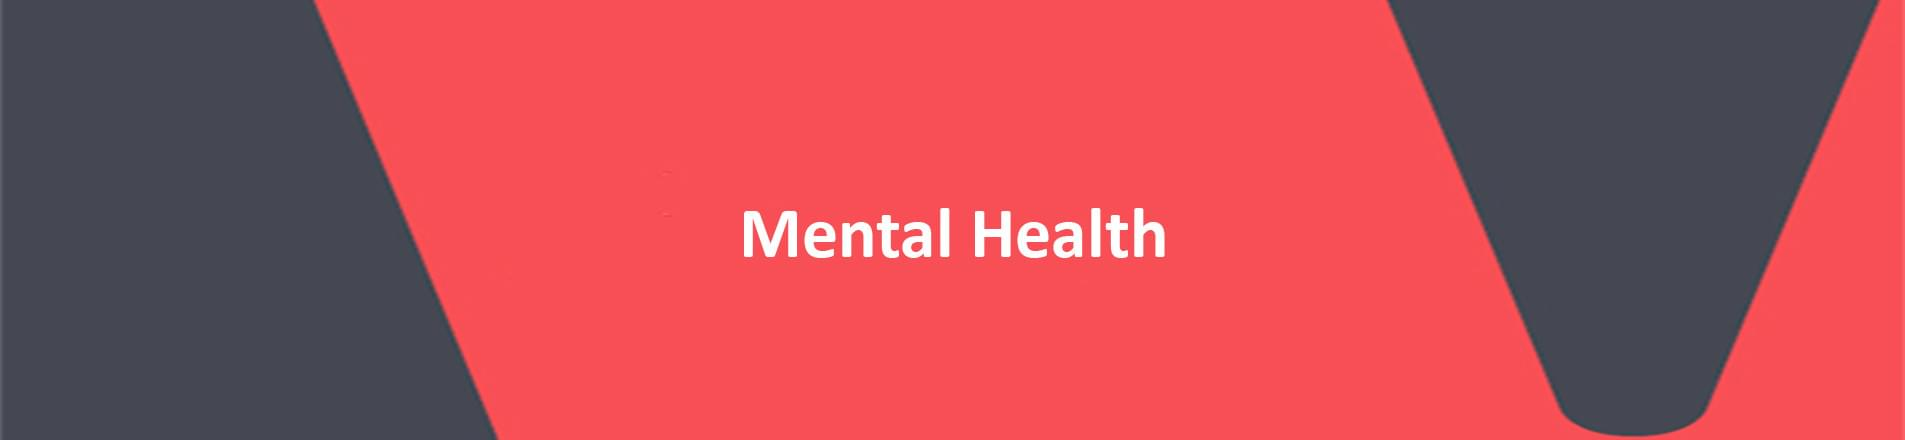 The word 'Mental Health' on red VERCIDA background